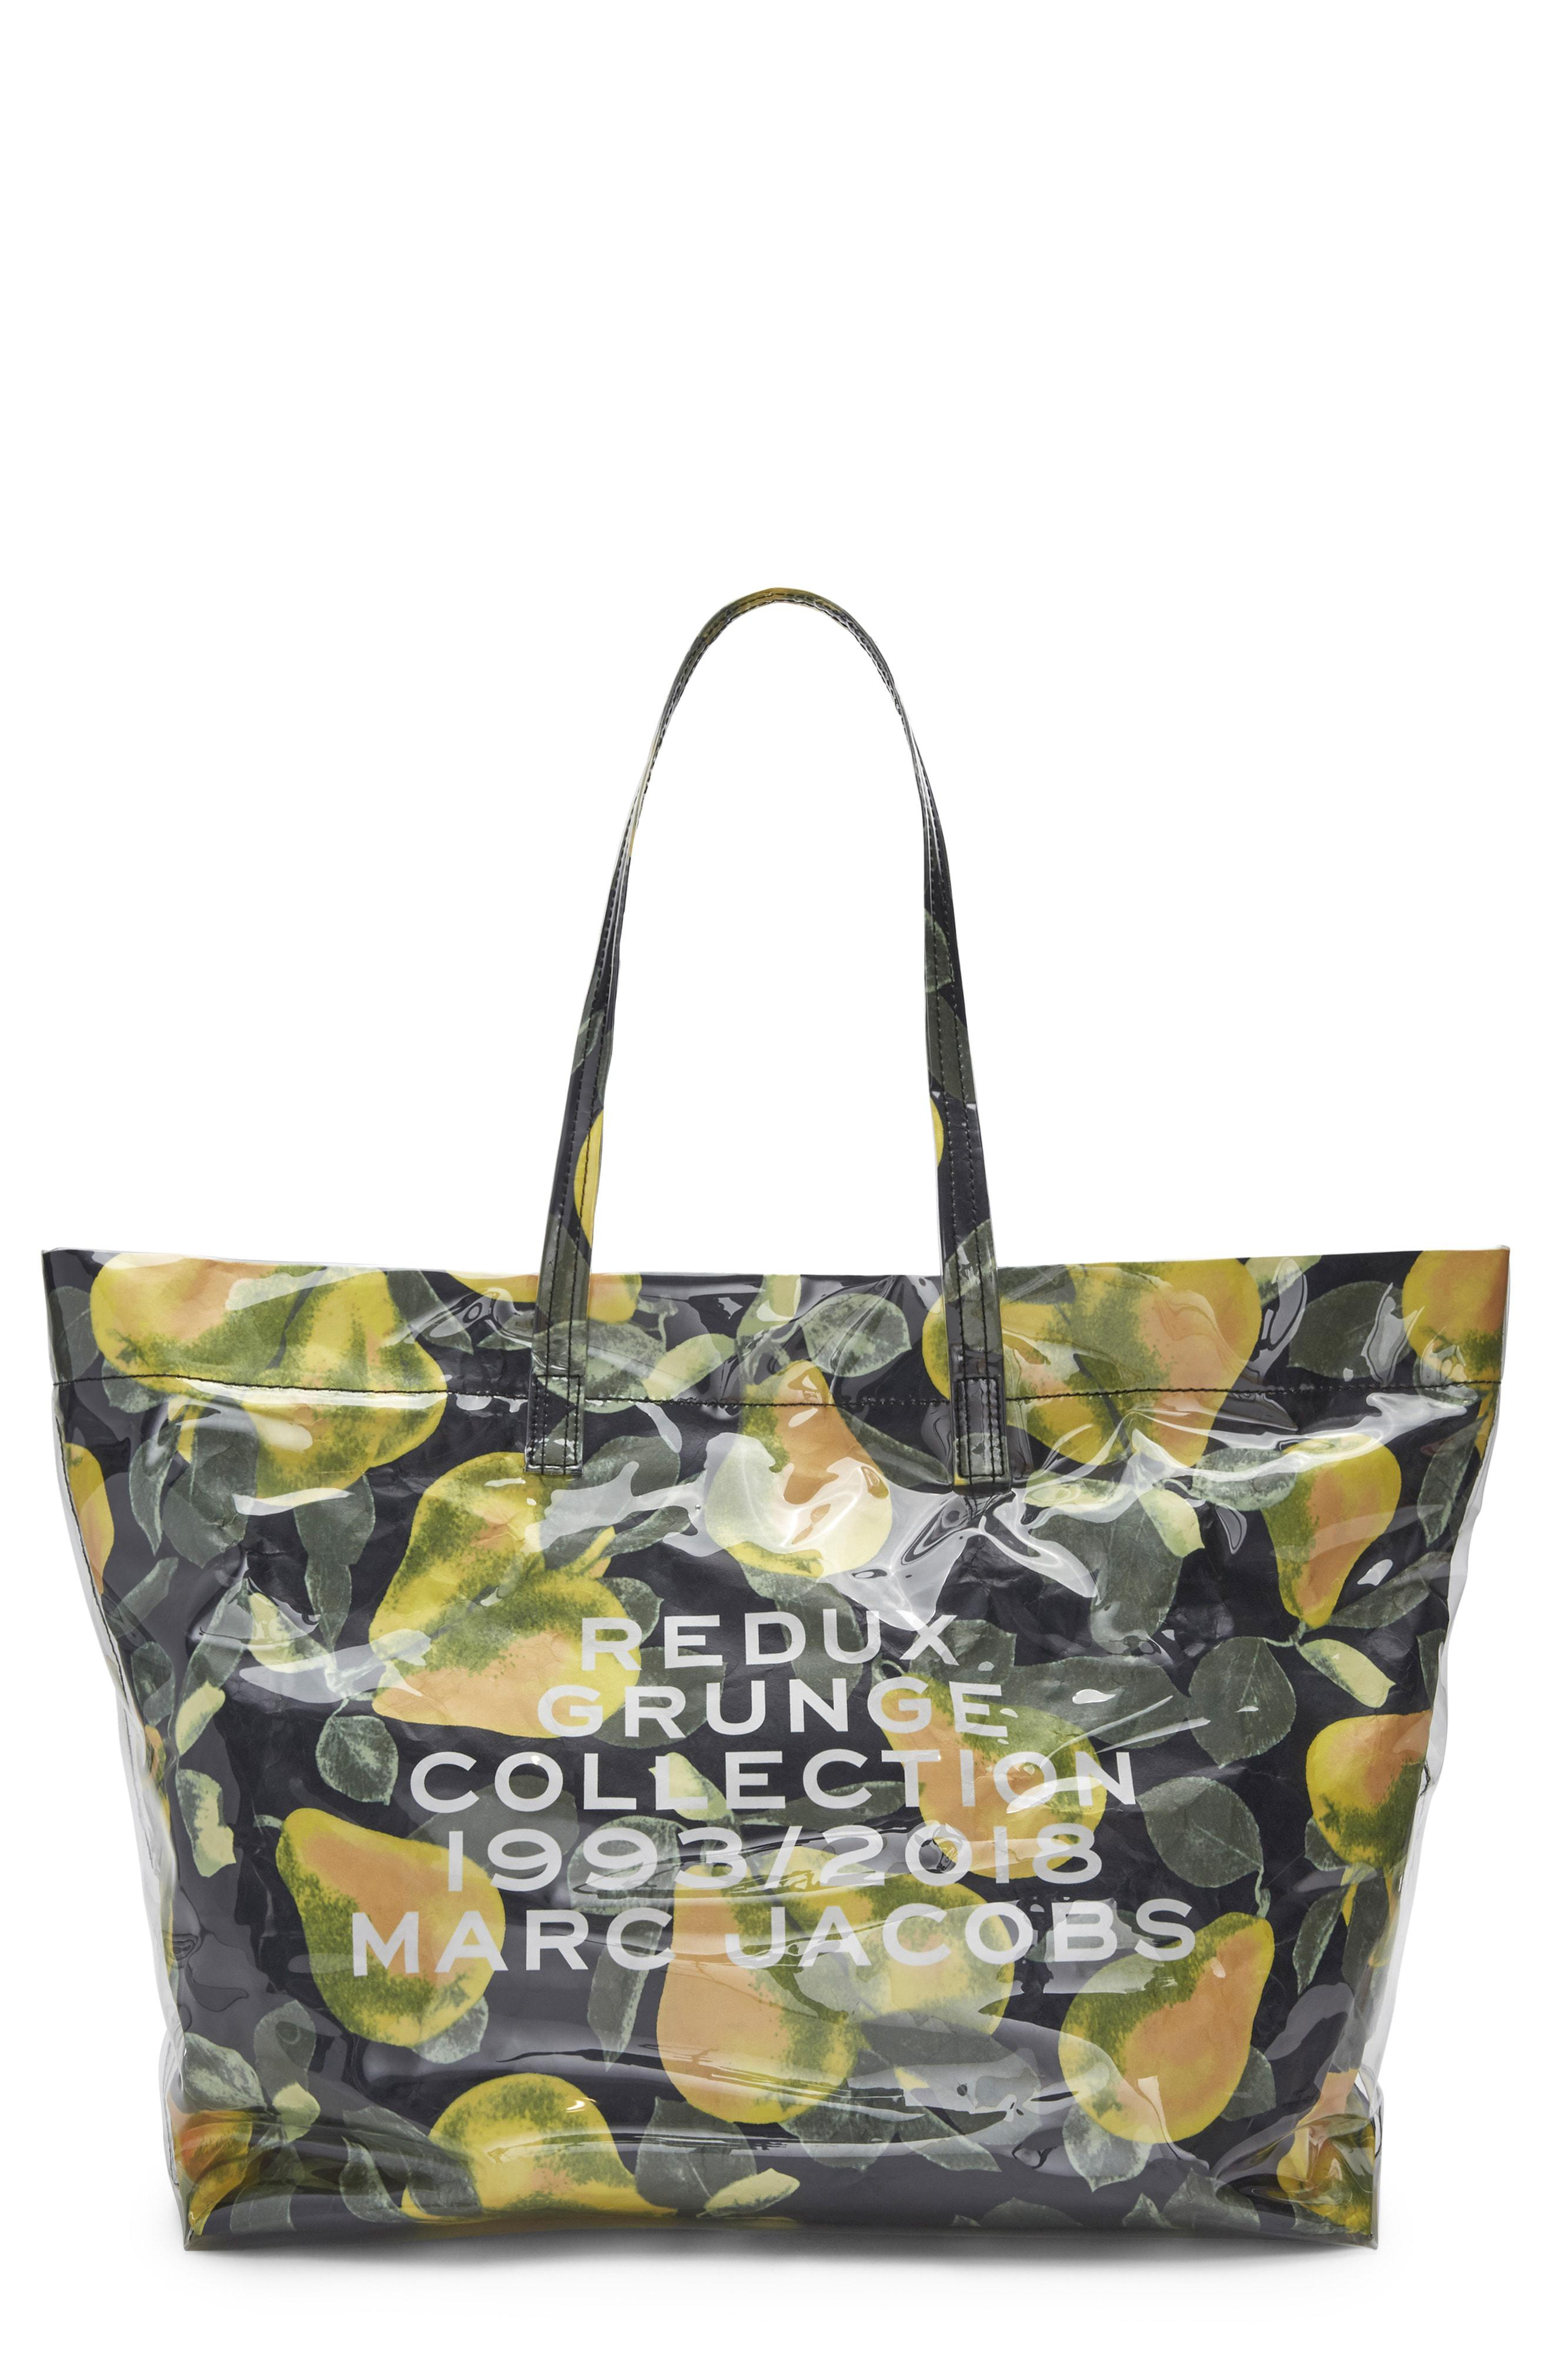 3a5433425938 Lyst - Marc Jacobs Redux Grunge East west Tote - Save ...